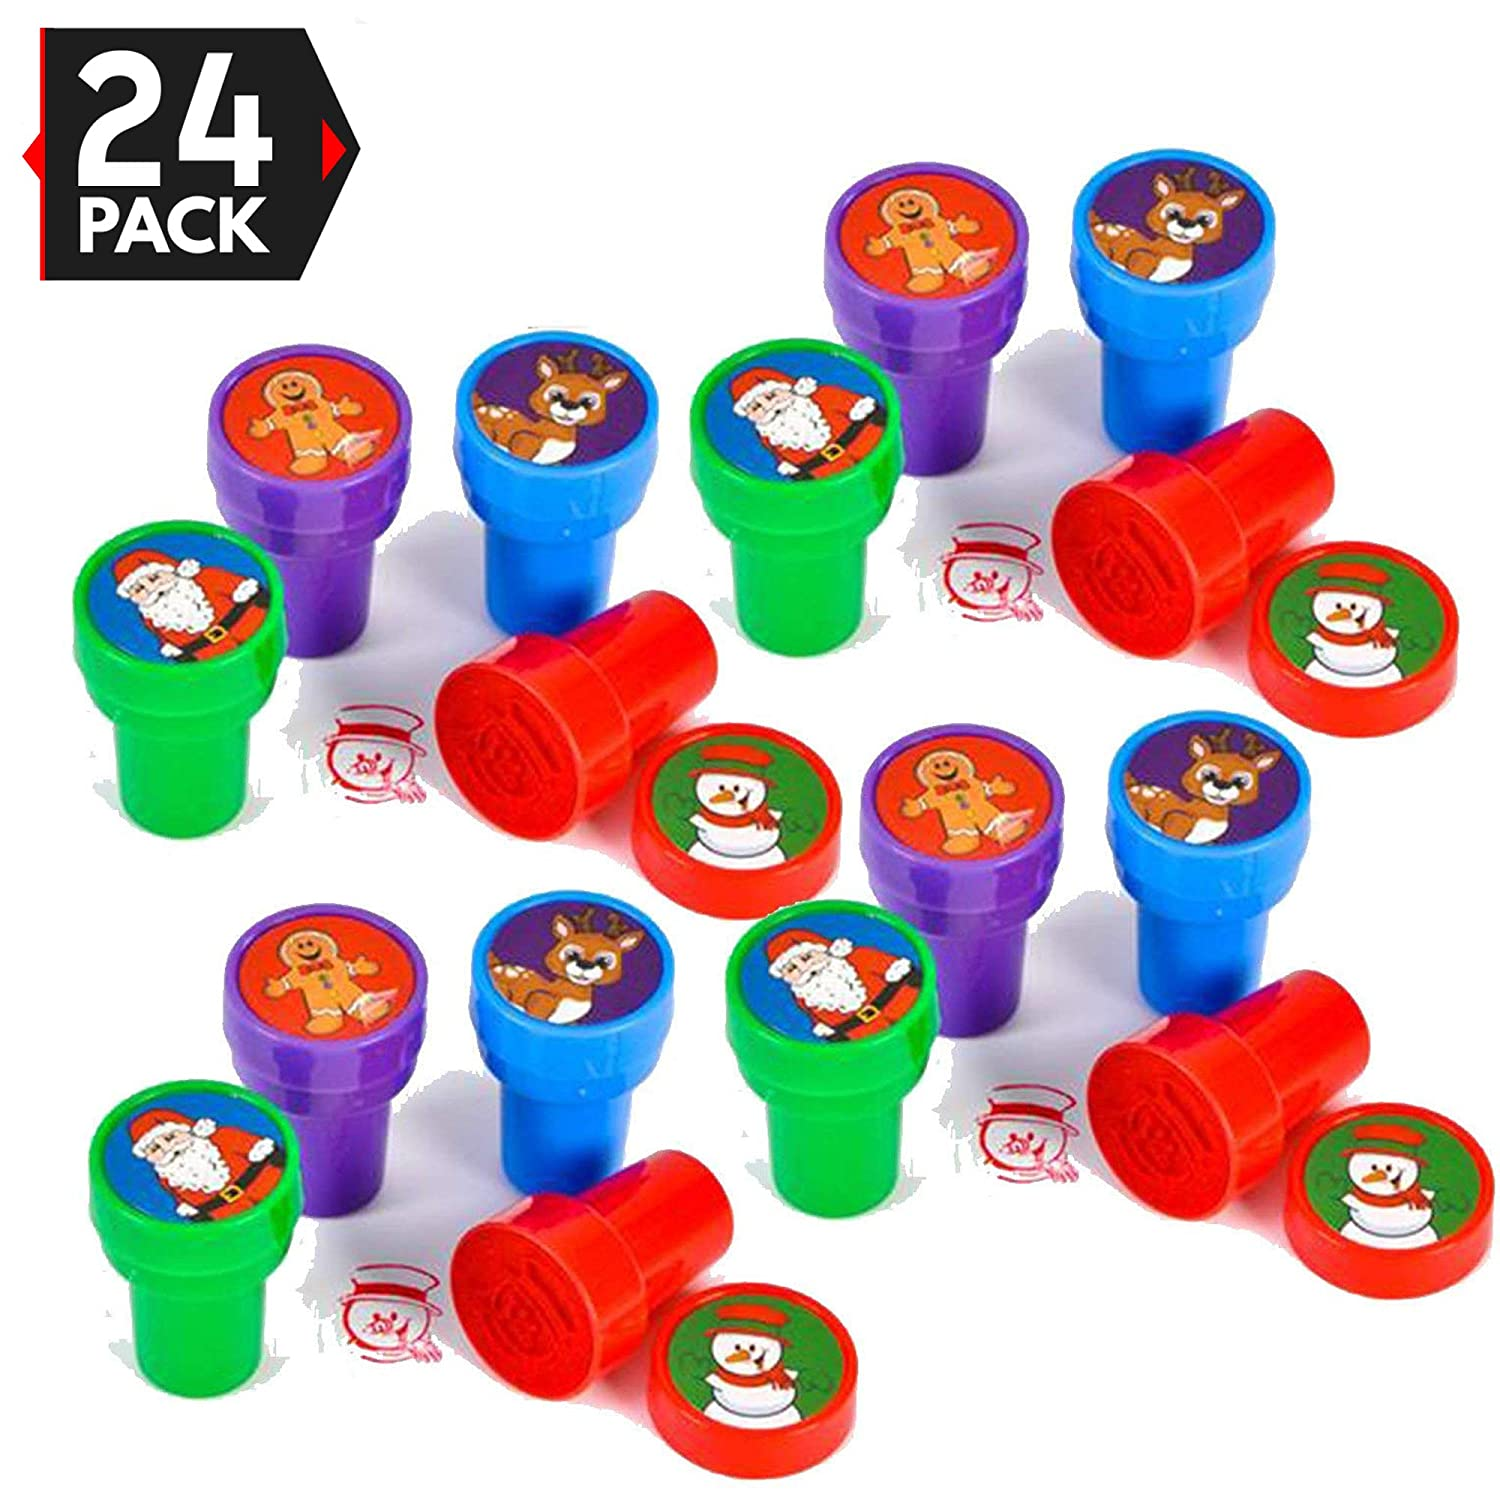 24 Christmas Assorted Bright Colored Plastic Stamps - Self Ink Christmas Stampers - Fun Gift  Party Favors  Party Toys  Goody Bag Favors